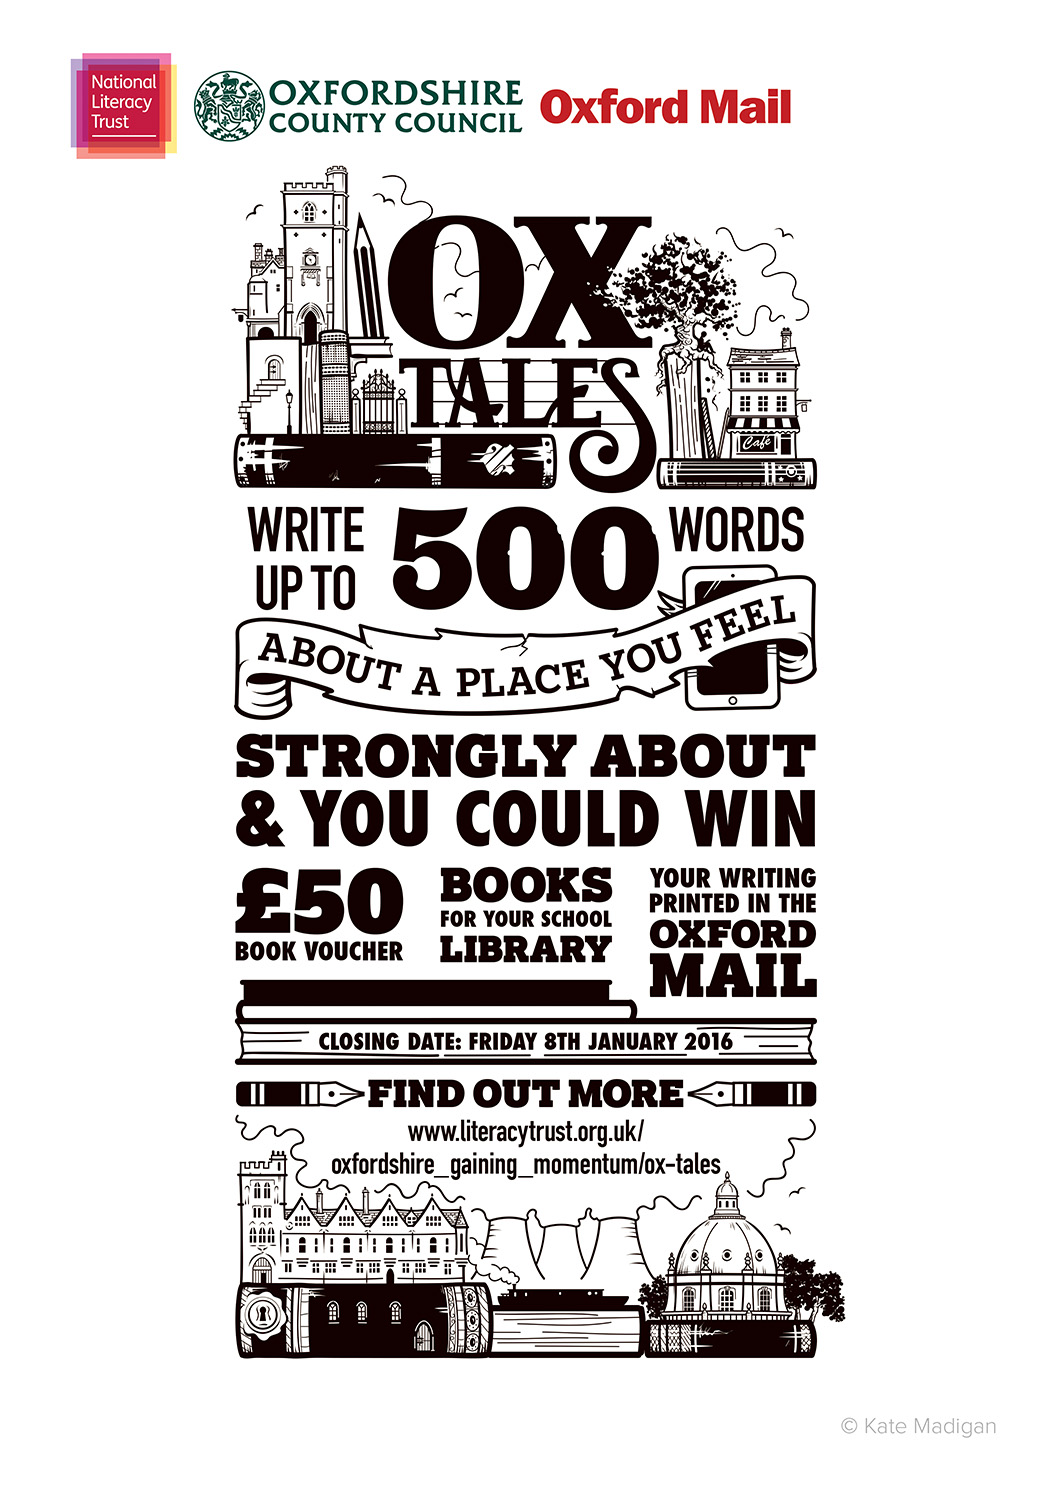 A3 poster design for the National Literacy Trust, featuring Oxfordshire landmarks (Carfax Tower, cafes, Brasenose College, Didcot Power Station, the Radcliffe Camera, a canal boat), books, pens, pencils, a tablet computer or phone and decorative typography.Copyright Kate Madigan.